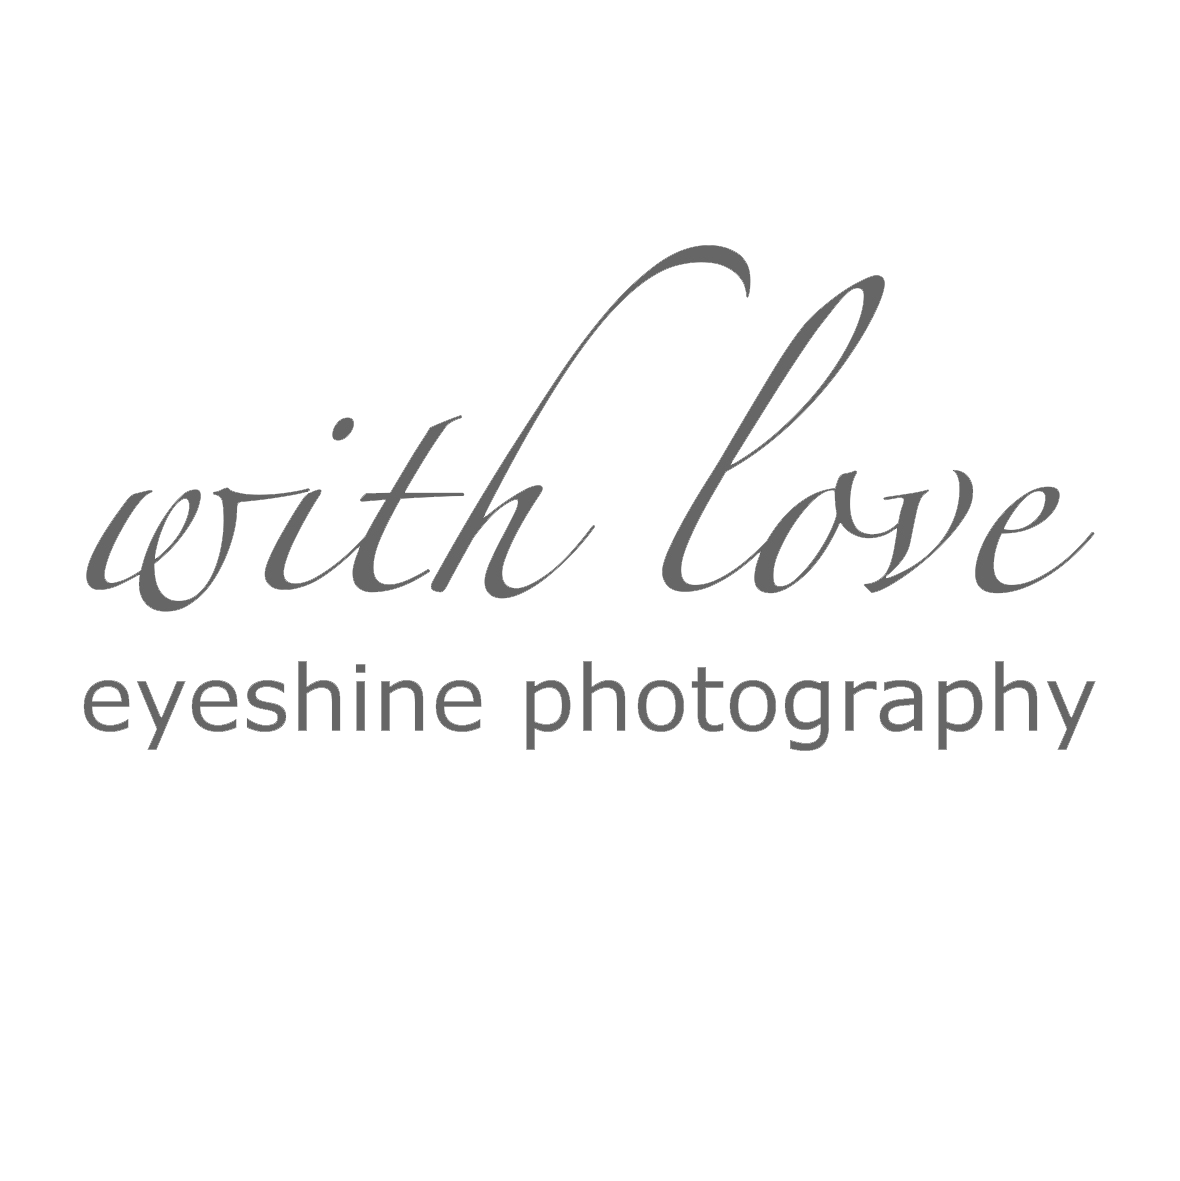 eyeshine photography blog